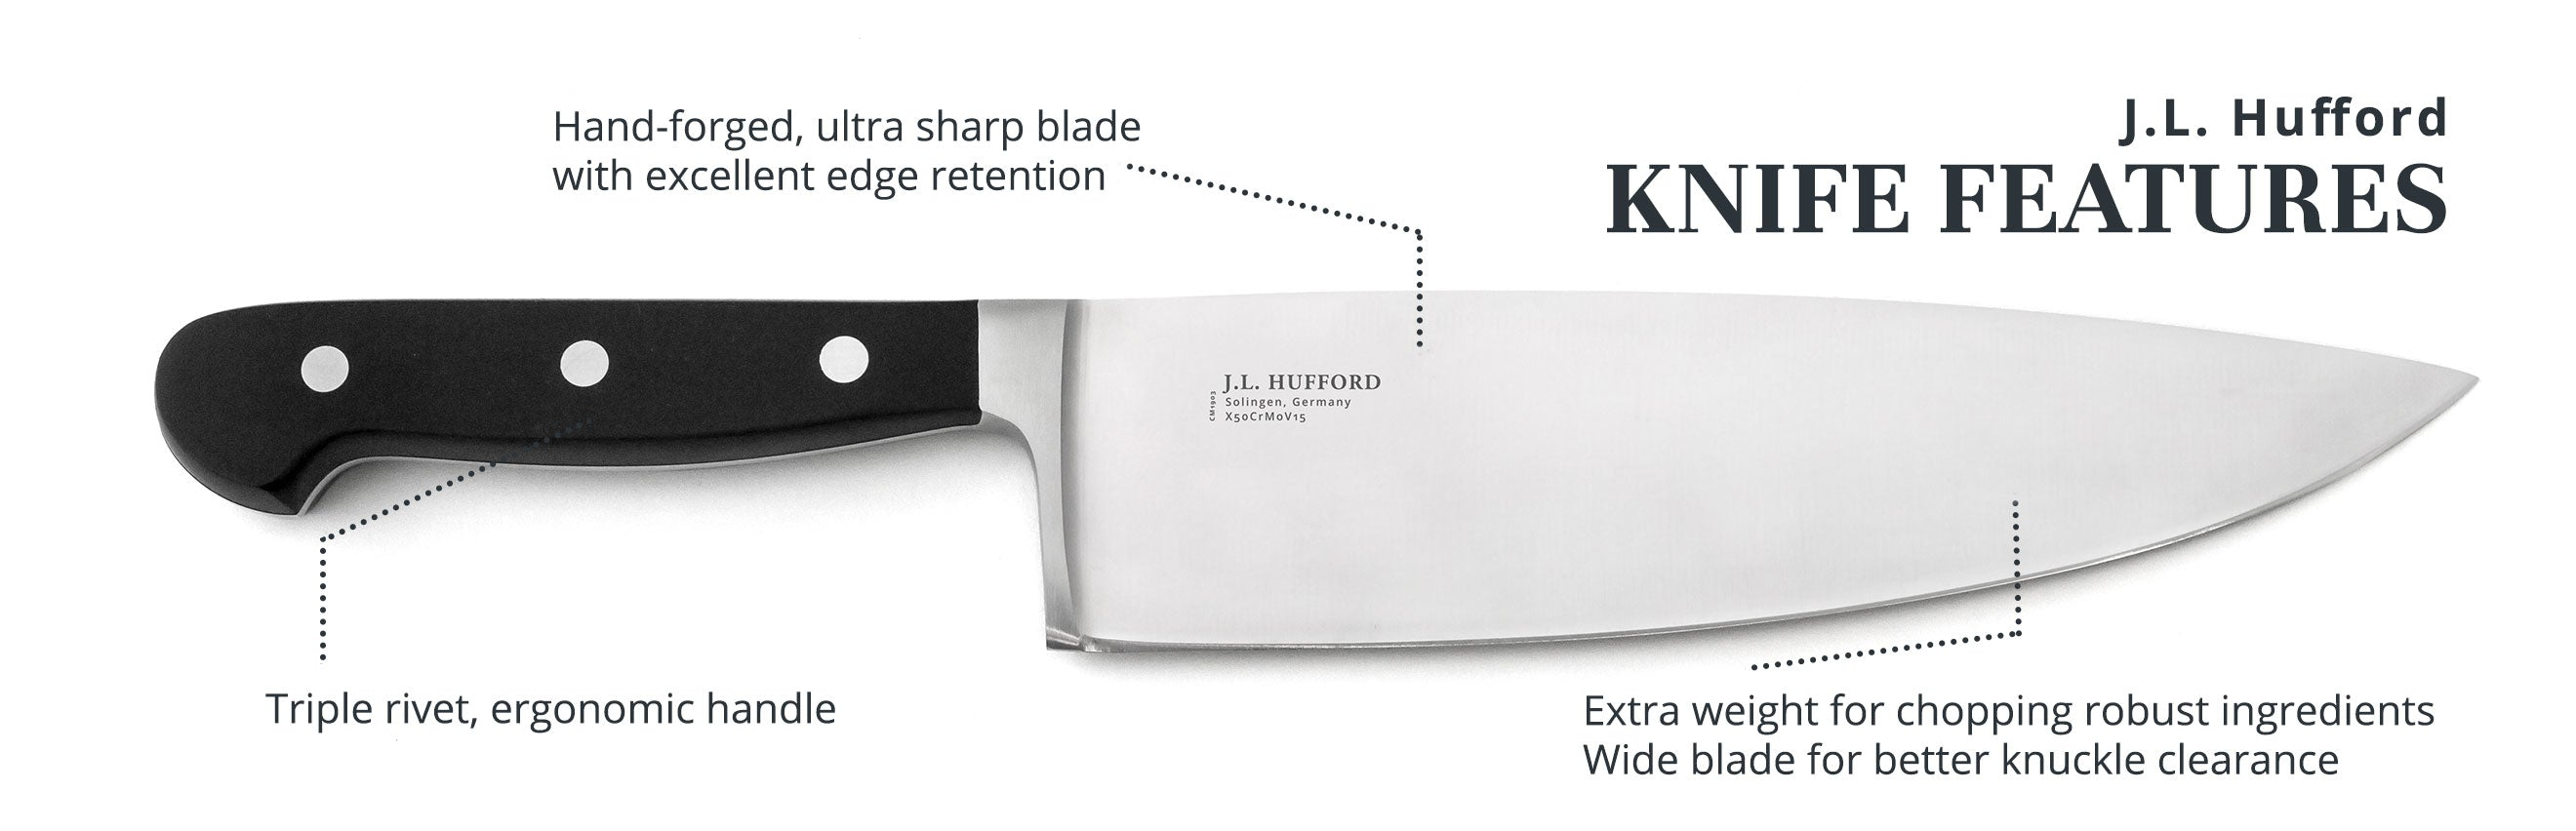 J.L. Hufford Knife Line Features